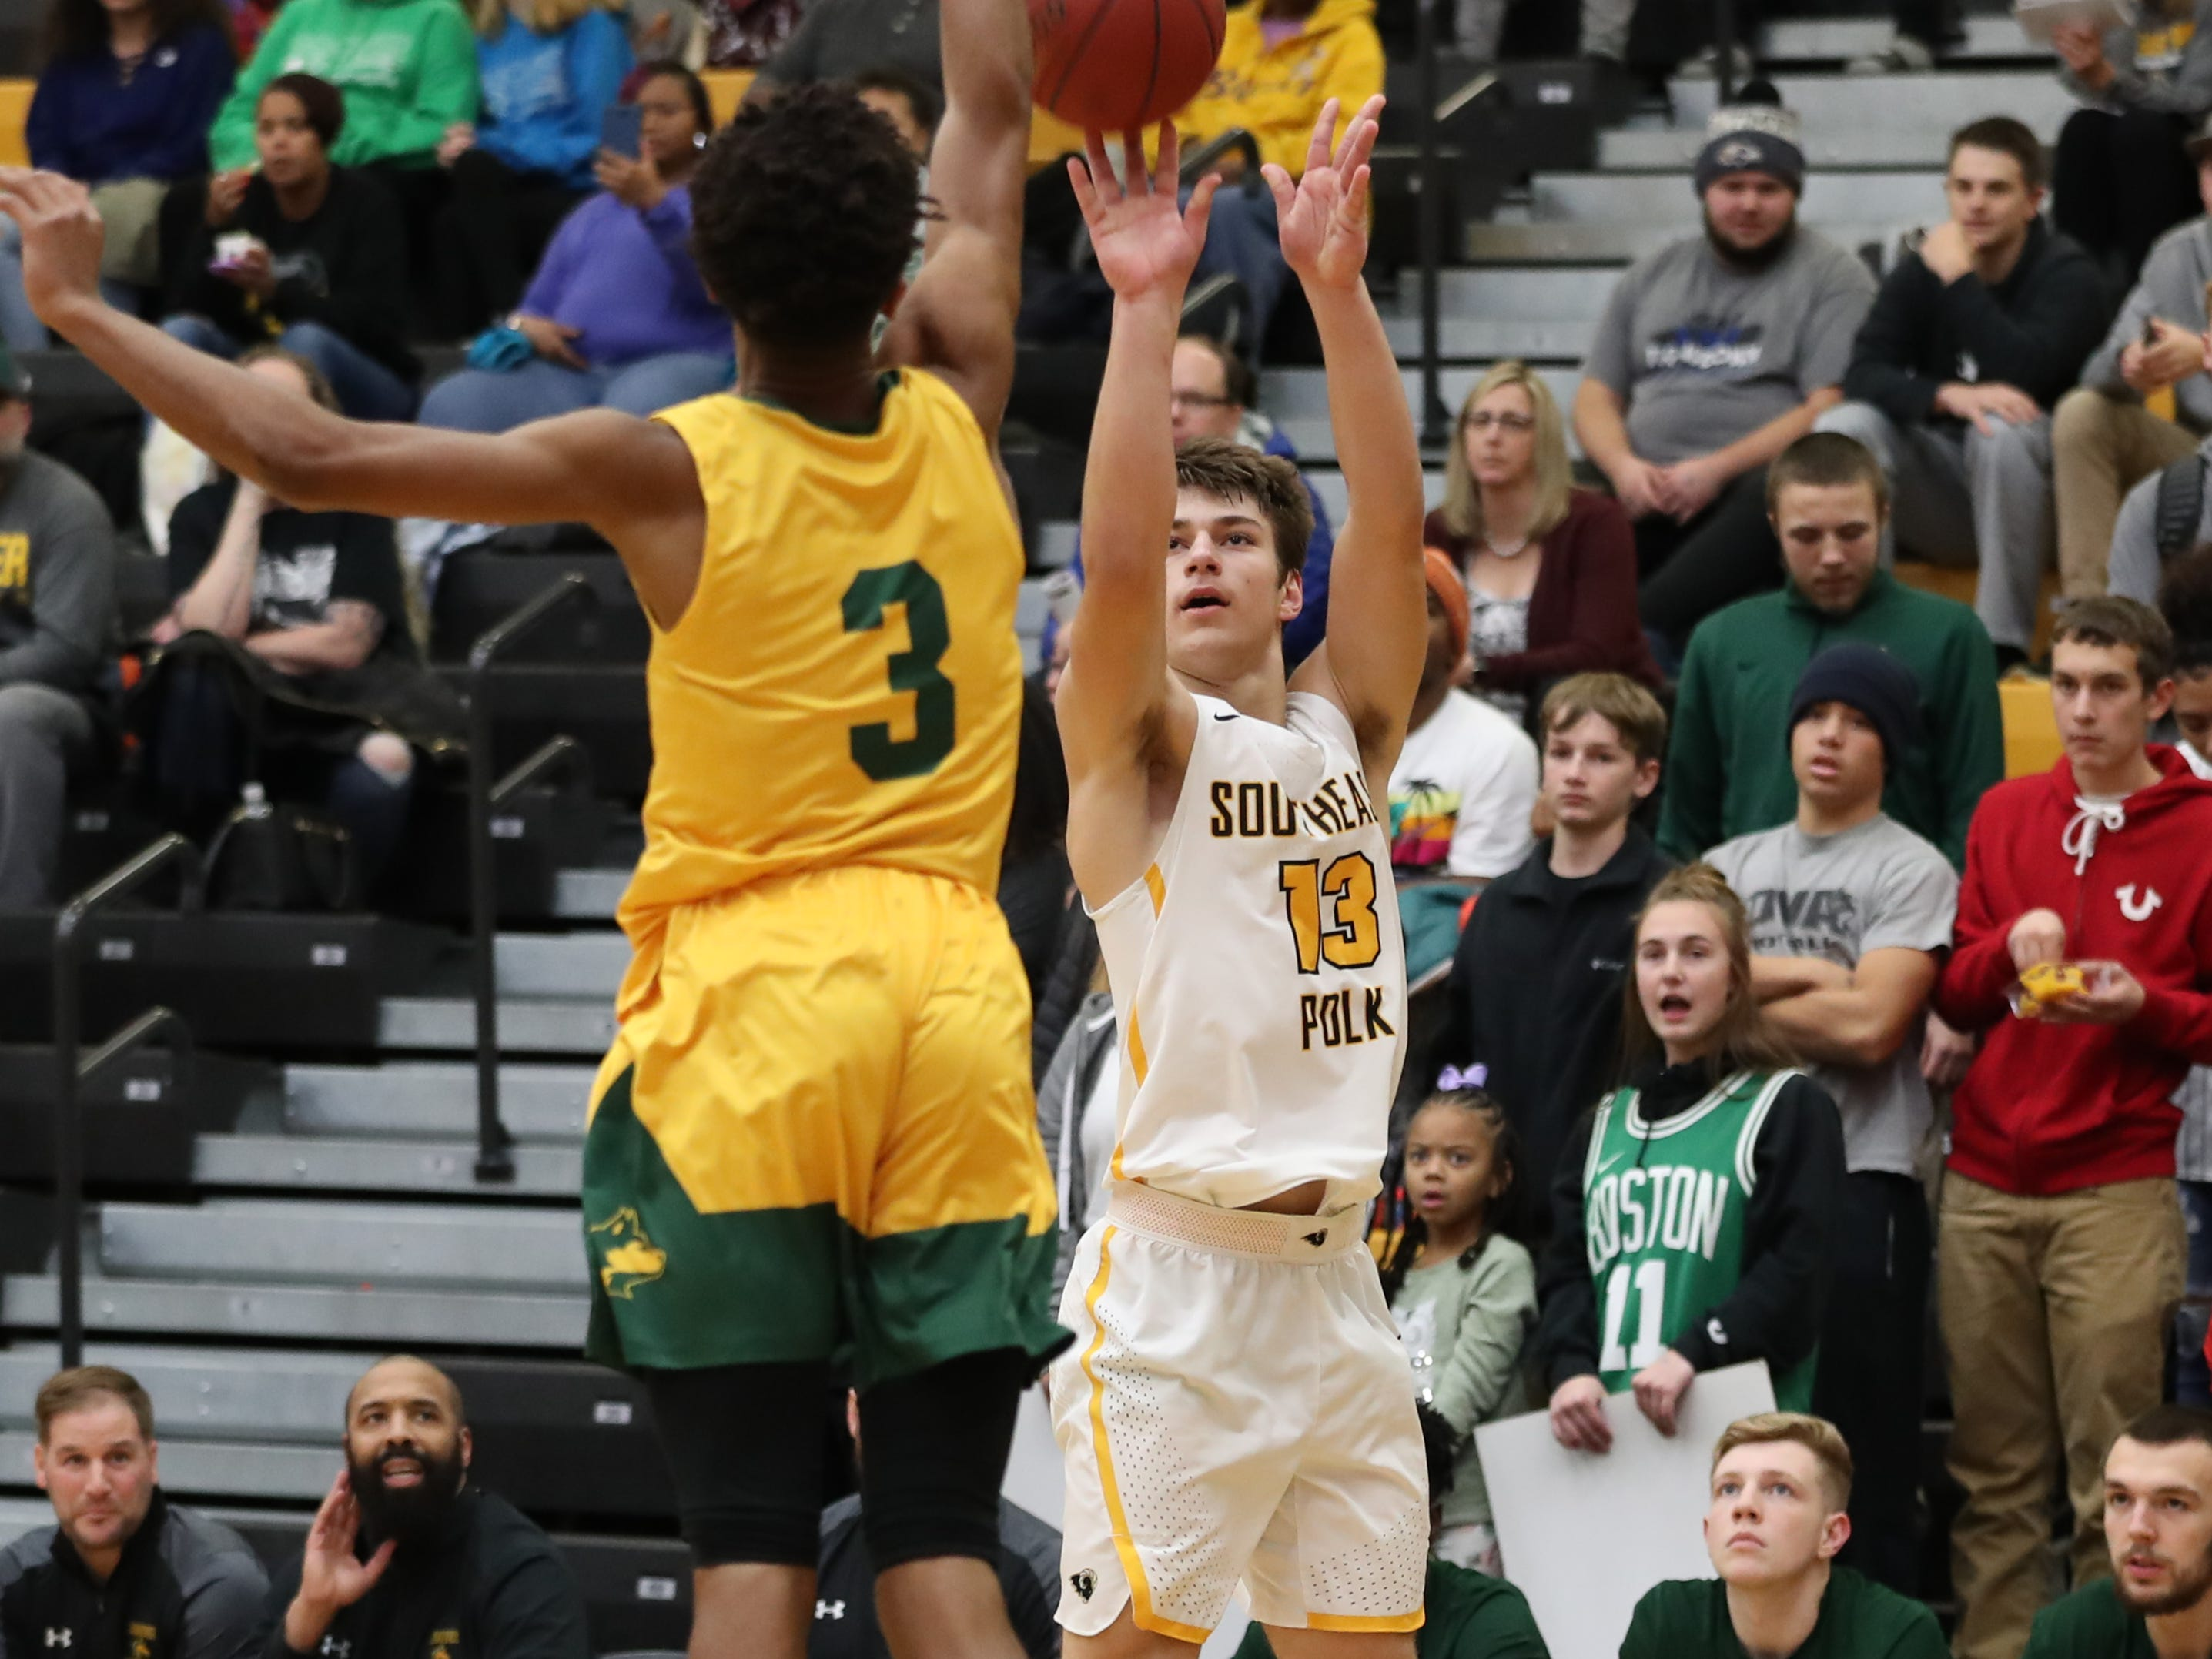 Southeast Polk Rams Dominic Caggiano (13) shoots over the hand of Hoover Huskies Hosea Treadwell (3) at Southeast Polk High School.